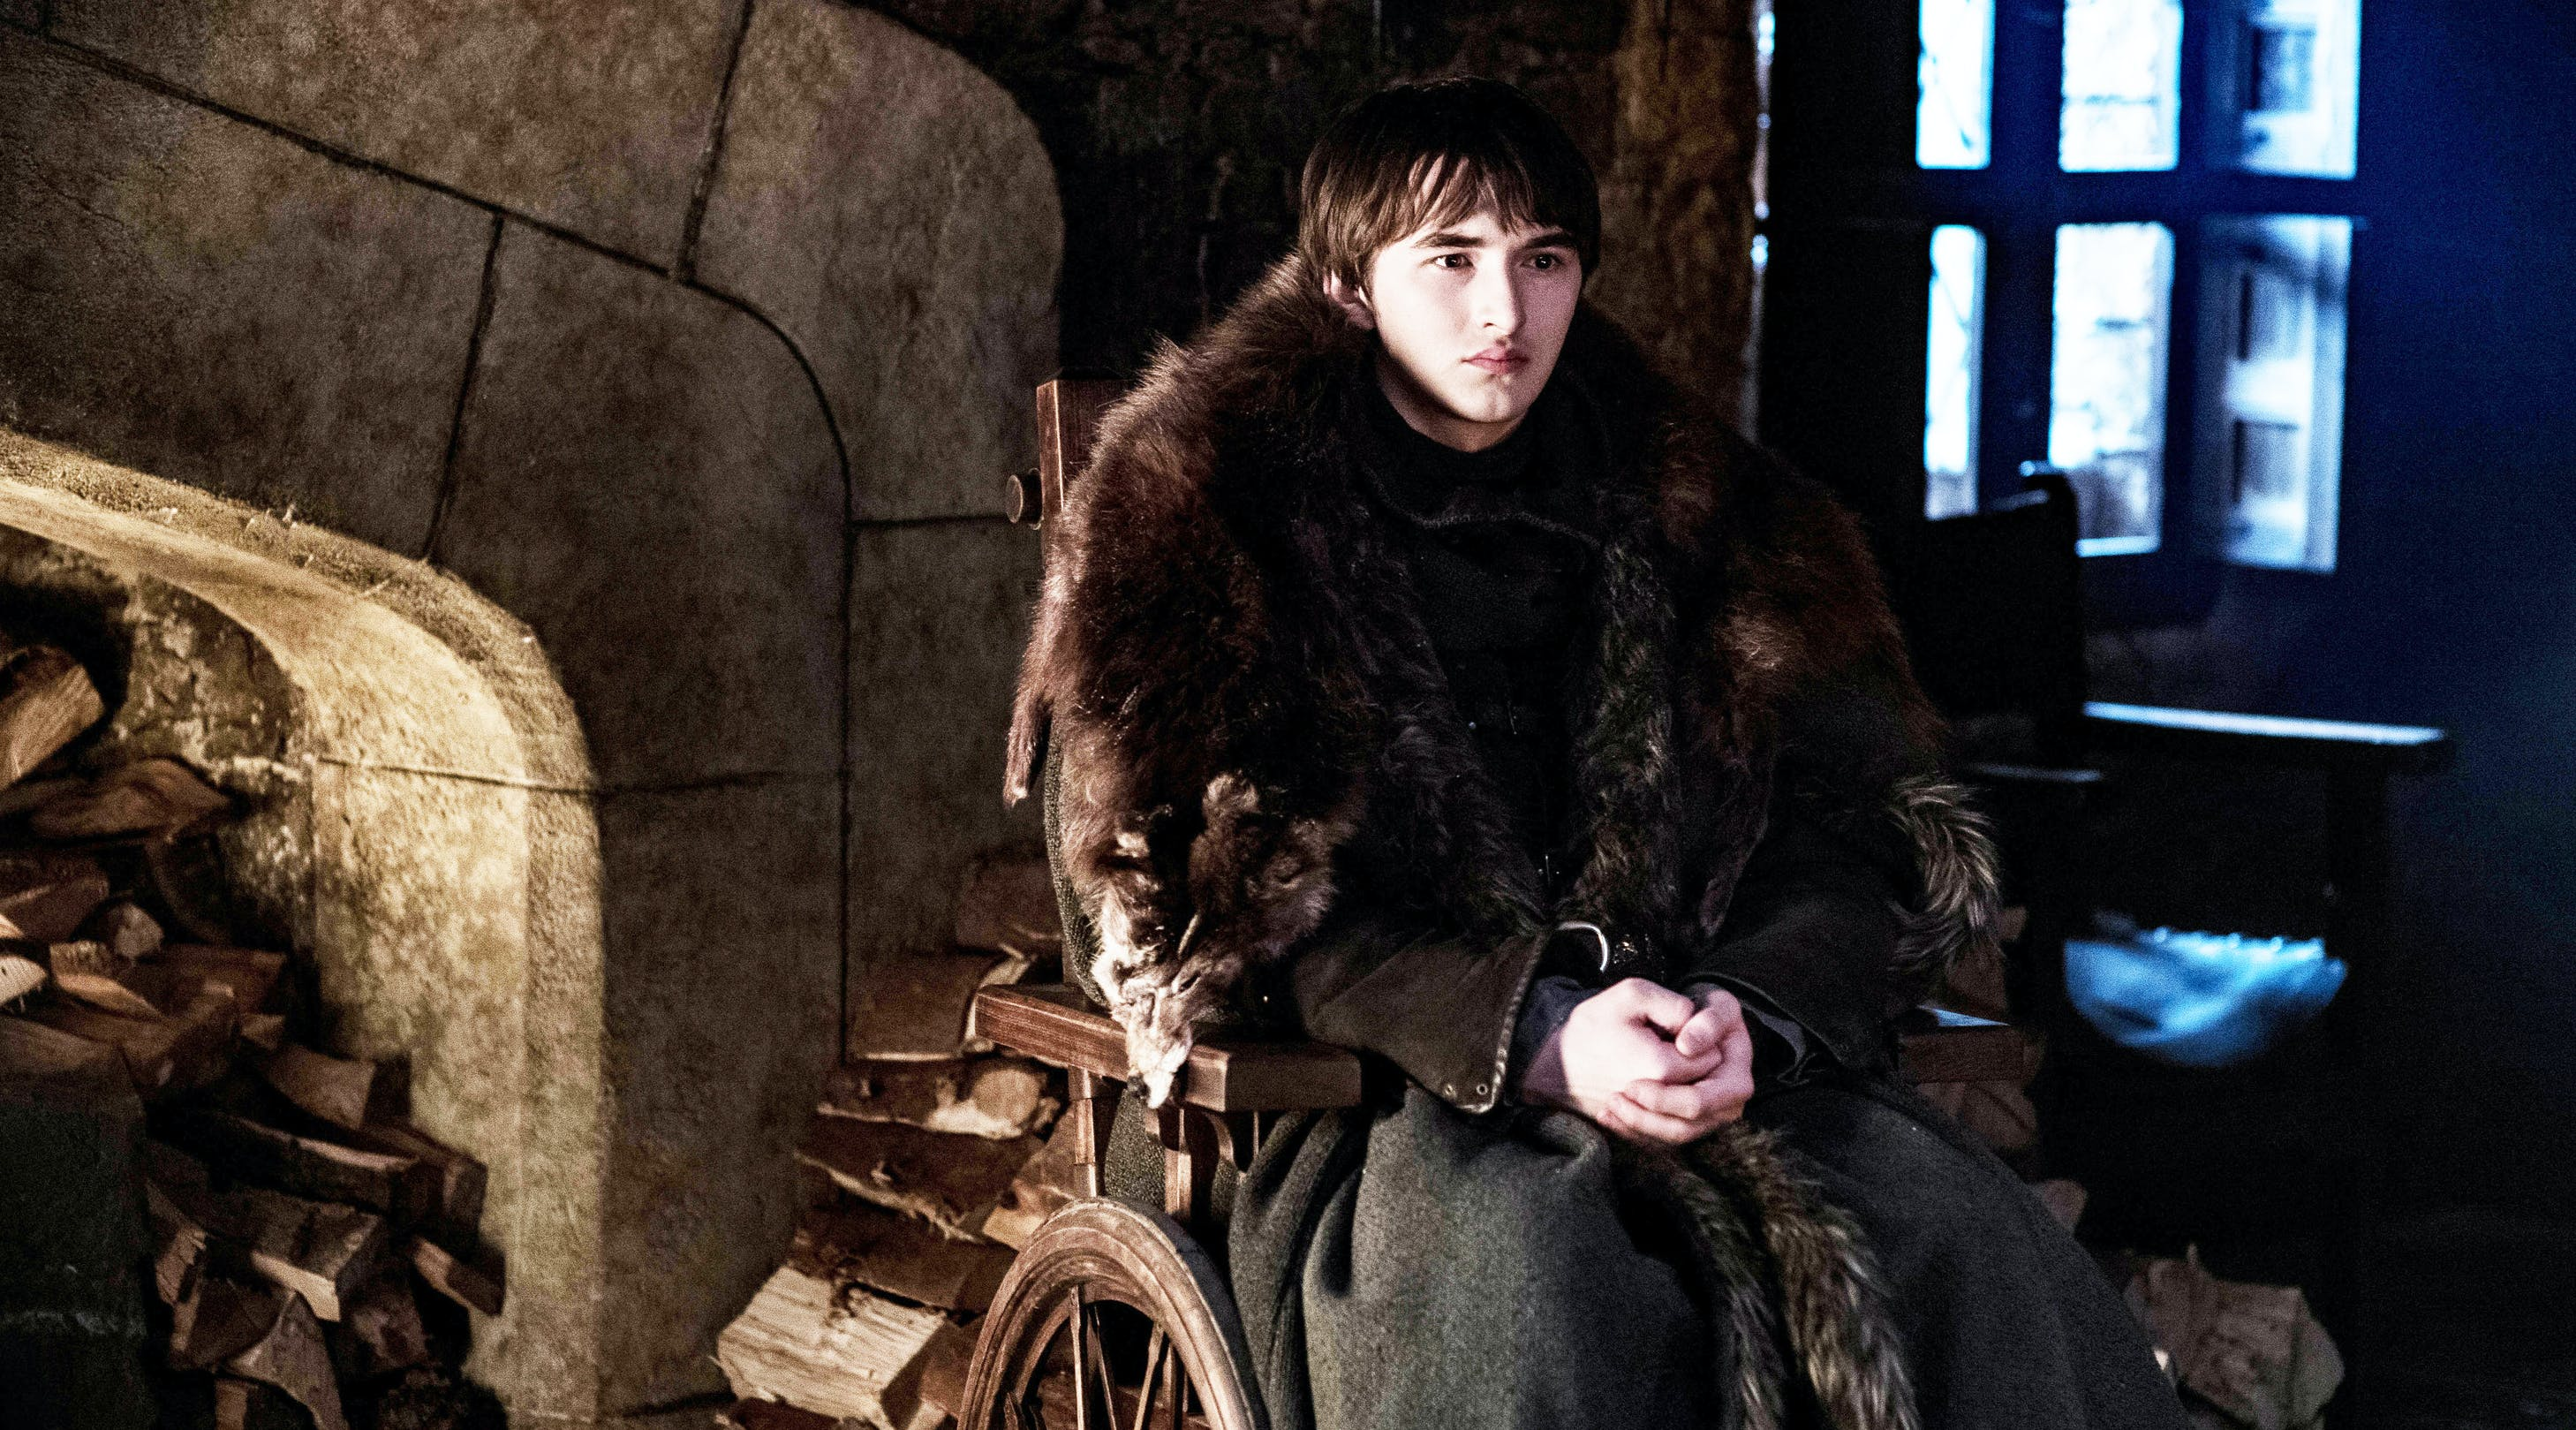 'Game of Thrones' Star Isaac Hempstead Wright Reveals the Story Behind His Creepy Bran Stare